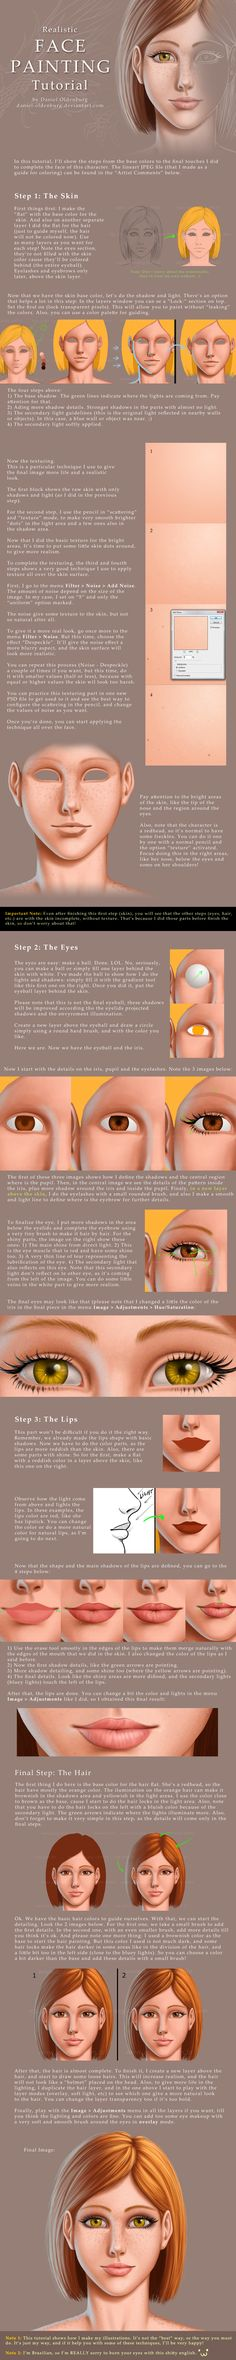 Face Painting Tutorial by ~daniel-oldenburg on deviantART